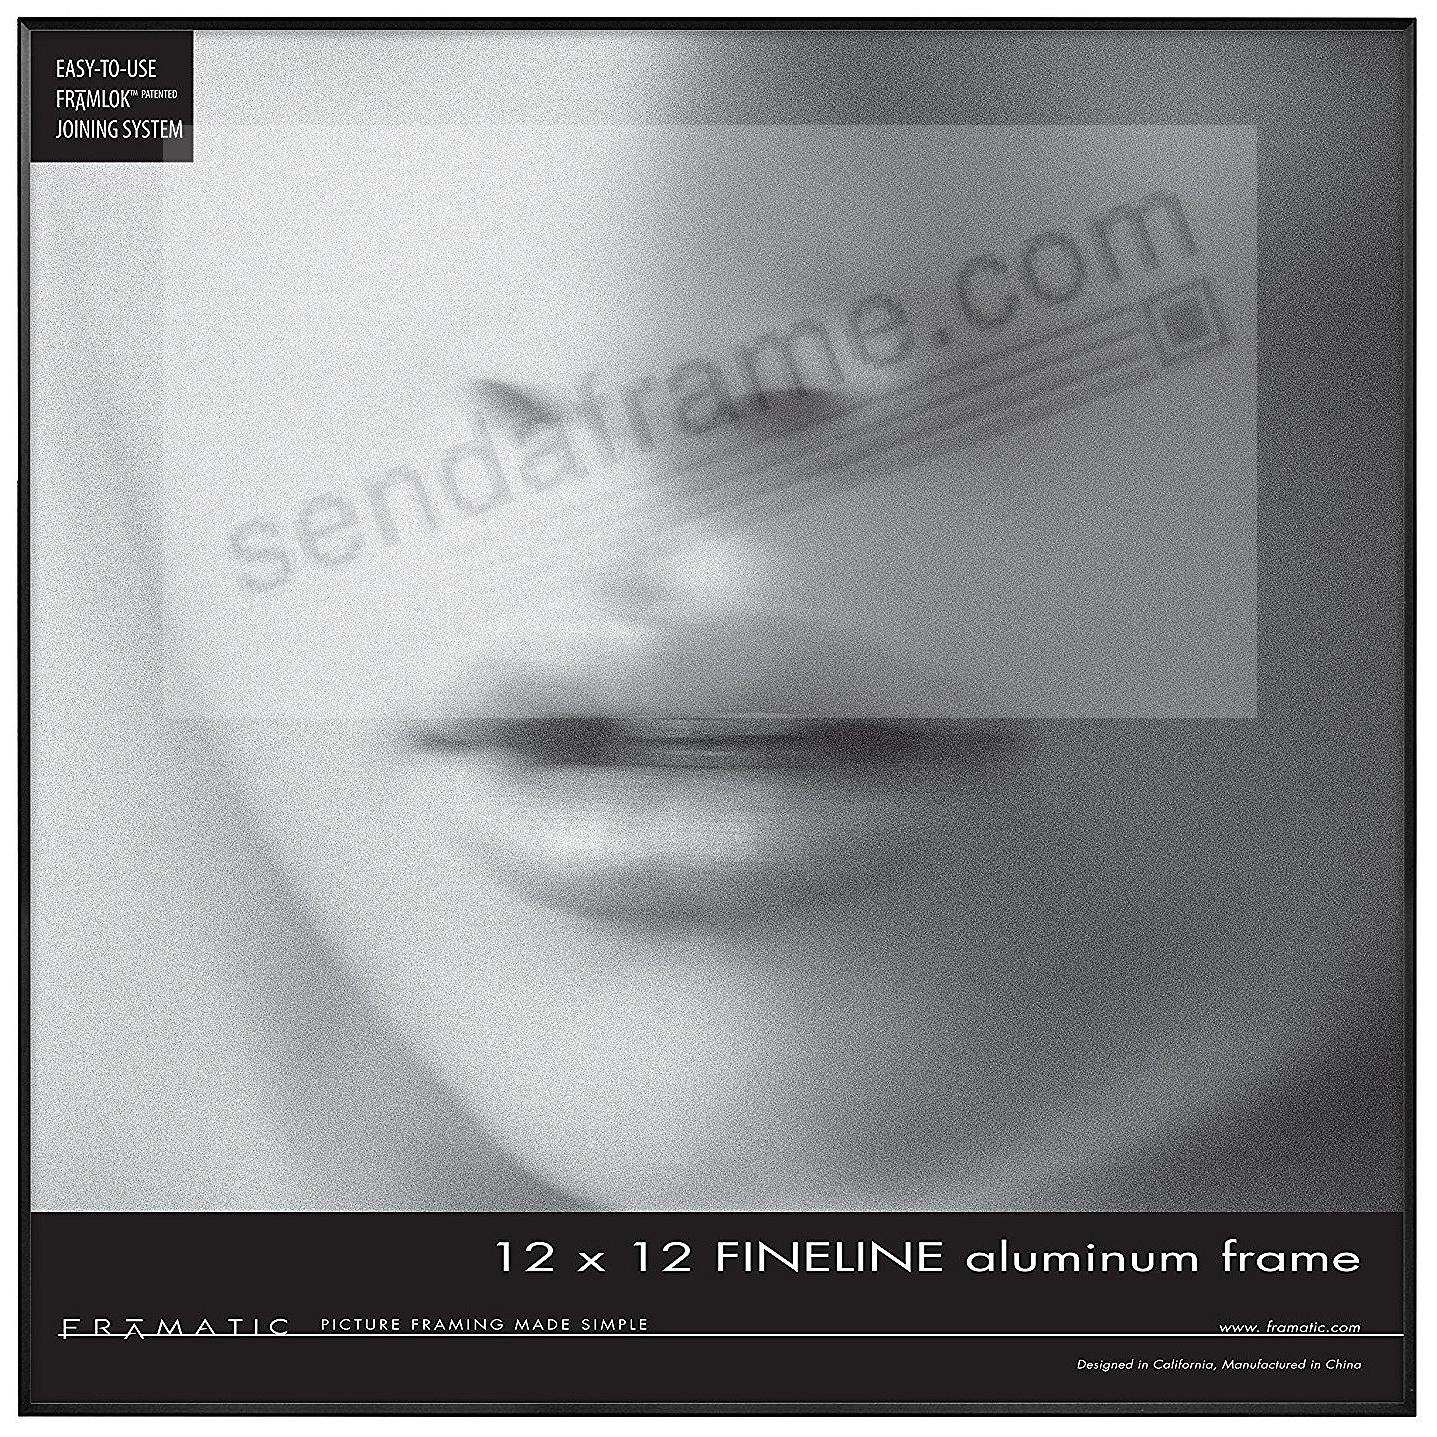 FINELINE Black Aluminum 12x12 by Framatic®